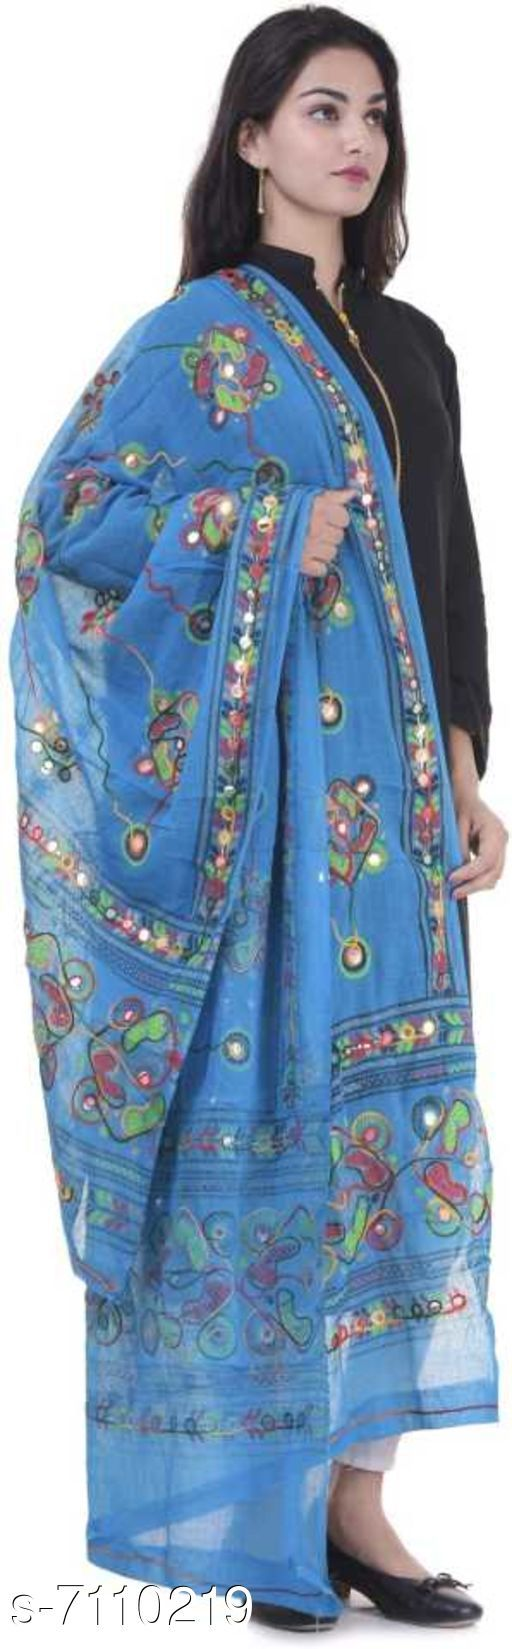 Dupattas Ethnic Pure Cotton Embroidered Women Dupatta Fabric: Cotton Pattern: Embroidered Multipack: 1 Sizes:Free Size (Length Size: 2.25 m)  Country of Origin: India Sizes Available: Free Size *Proof of Safe Delivery! Click to know on Safety Standards of Delivery Partners- https://ltl.sh/y_nZrAV3  Catalog Rating: ★4 (510)  Catalog Name: Ravishing Stylish Women Dupattas CatalogID_1134945 C74-SC1006 Code: 622-7110219-